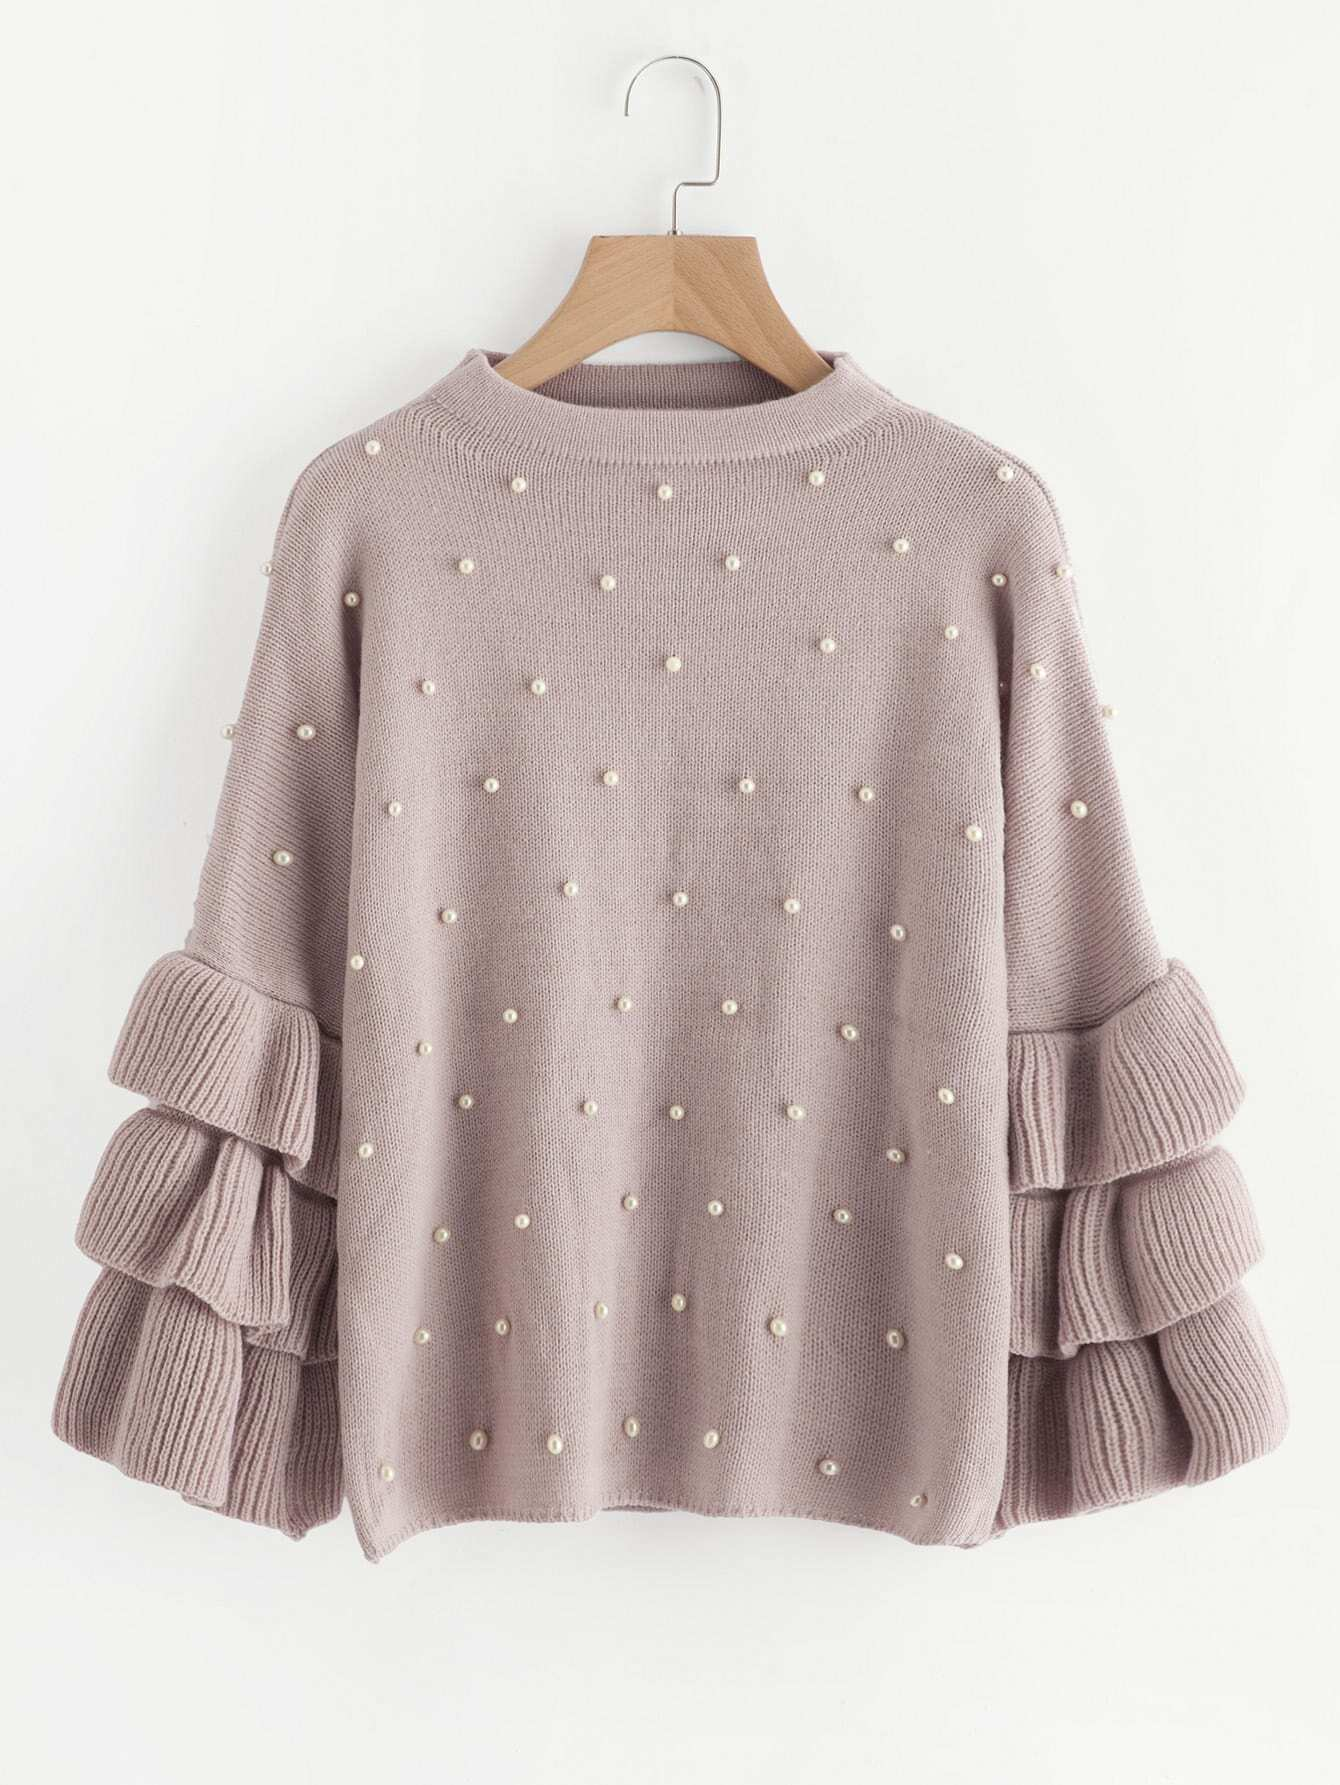 http://it.shein.com/Pearl-Beaded-Layered-Ruffle-Sleeve-Jumper-p-375944-cat-1734.html